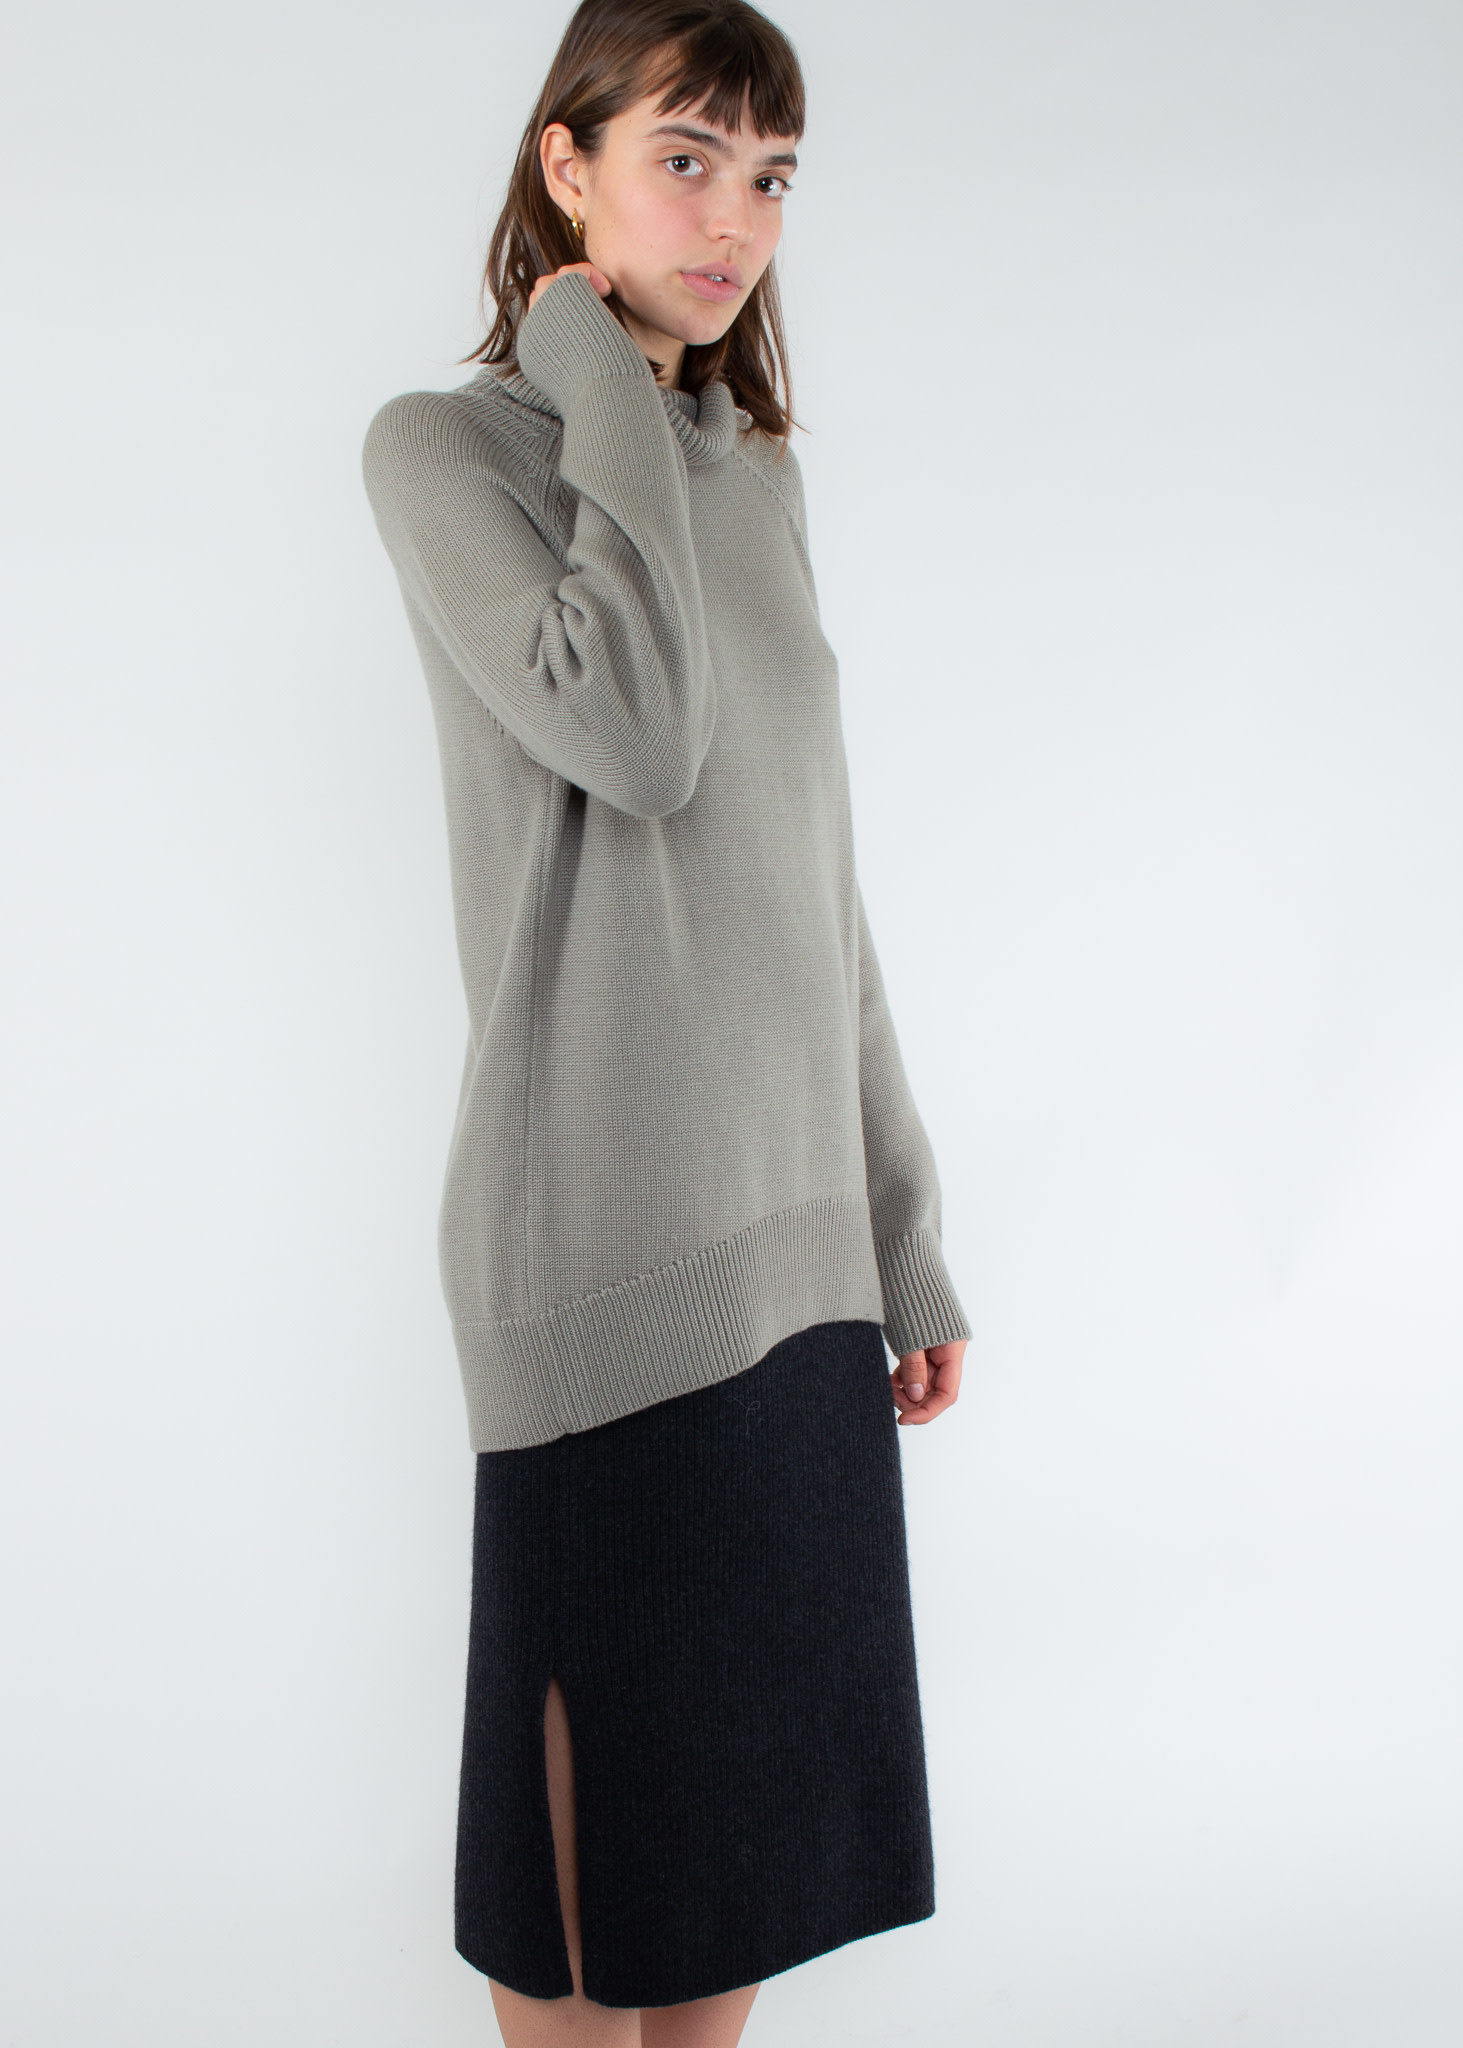 ASSEMBLY LABEL Ribbed Roll Neck Knit Sea Grass